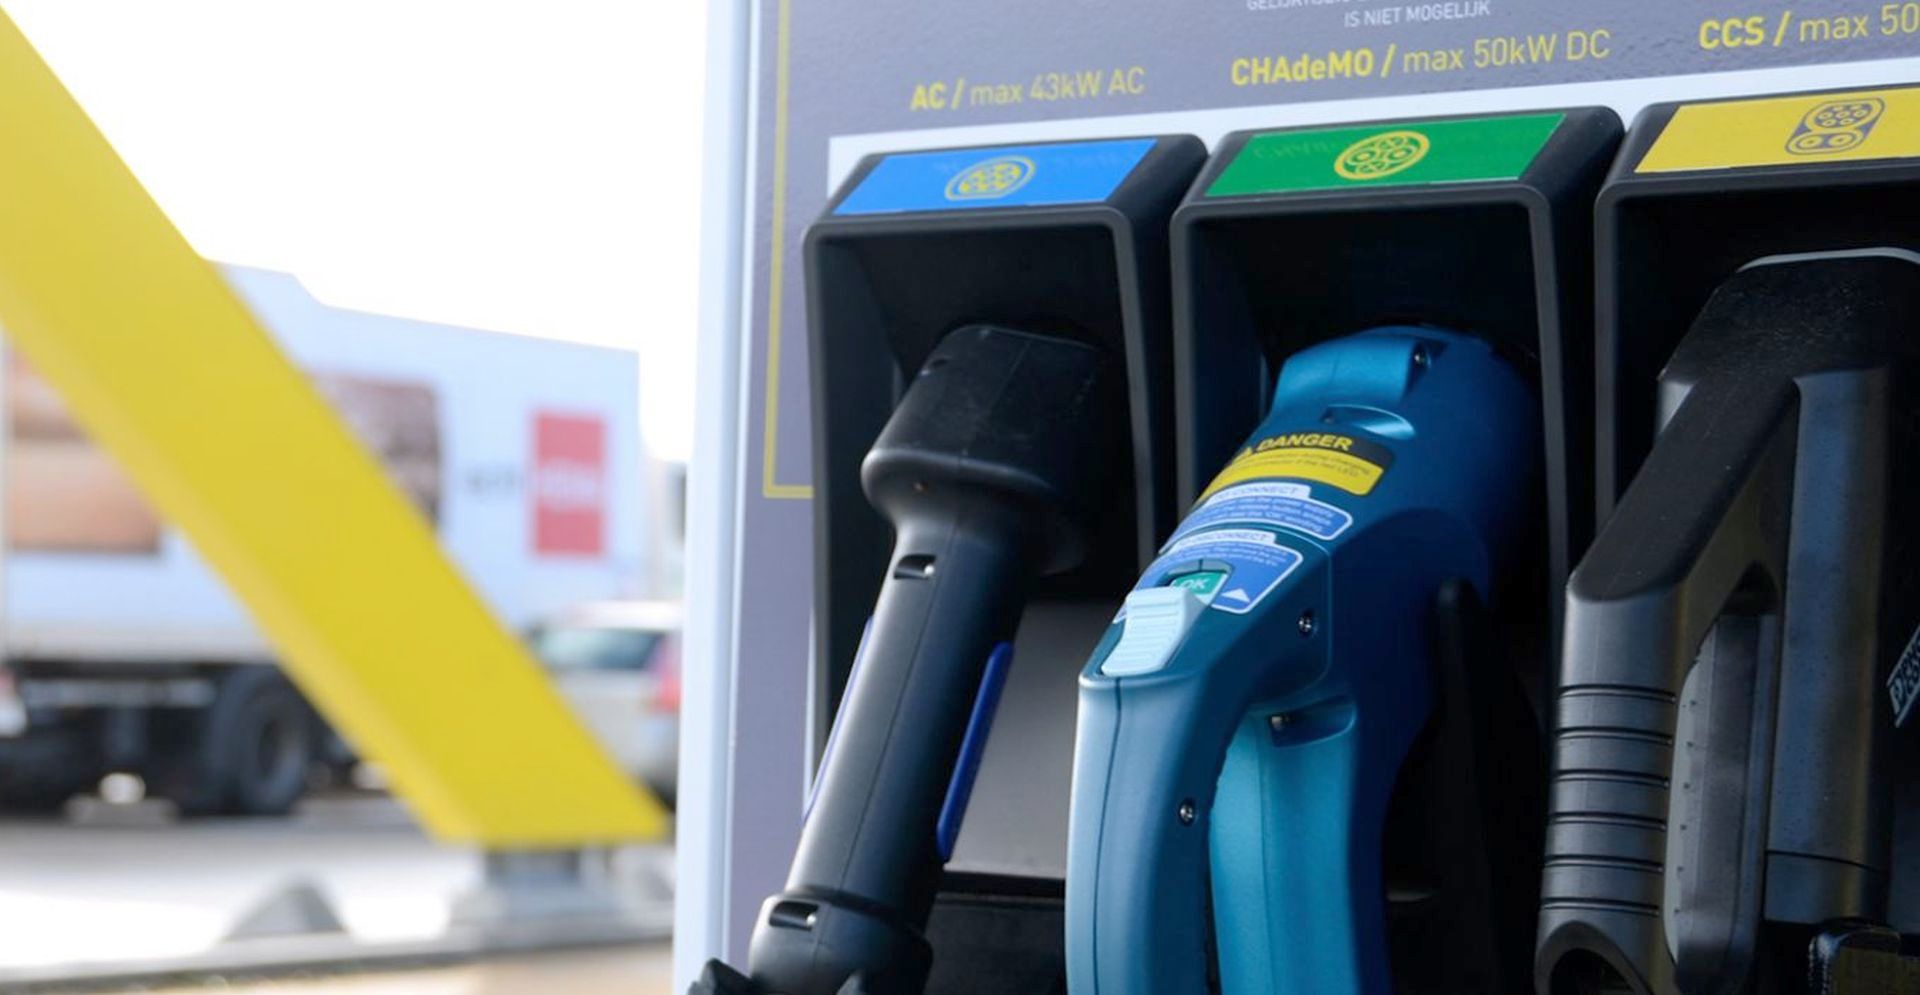 Fastned chademo snellader